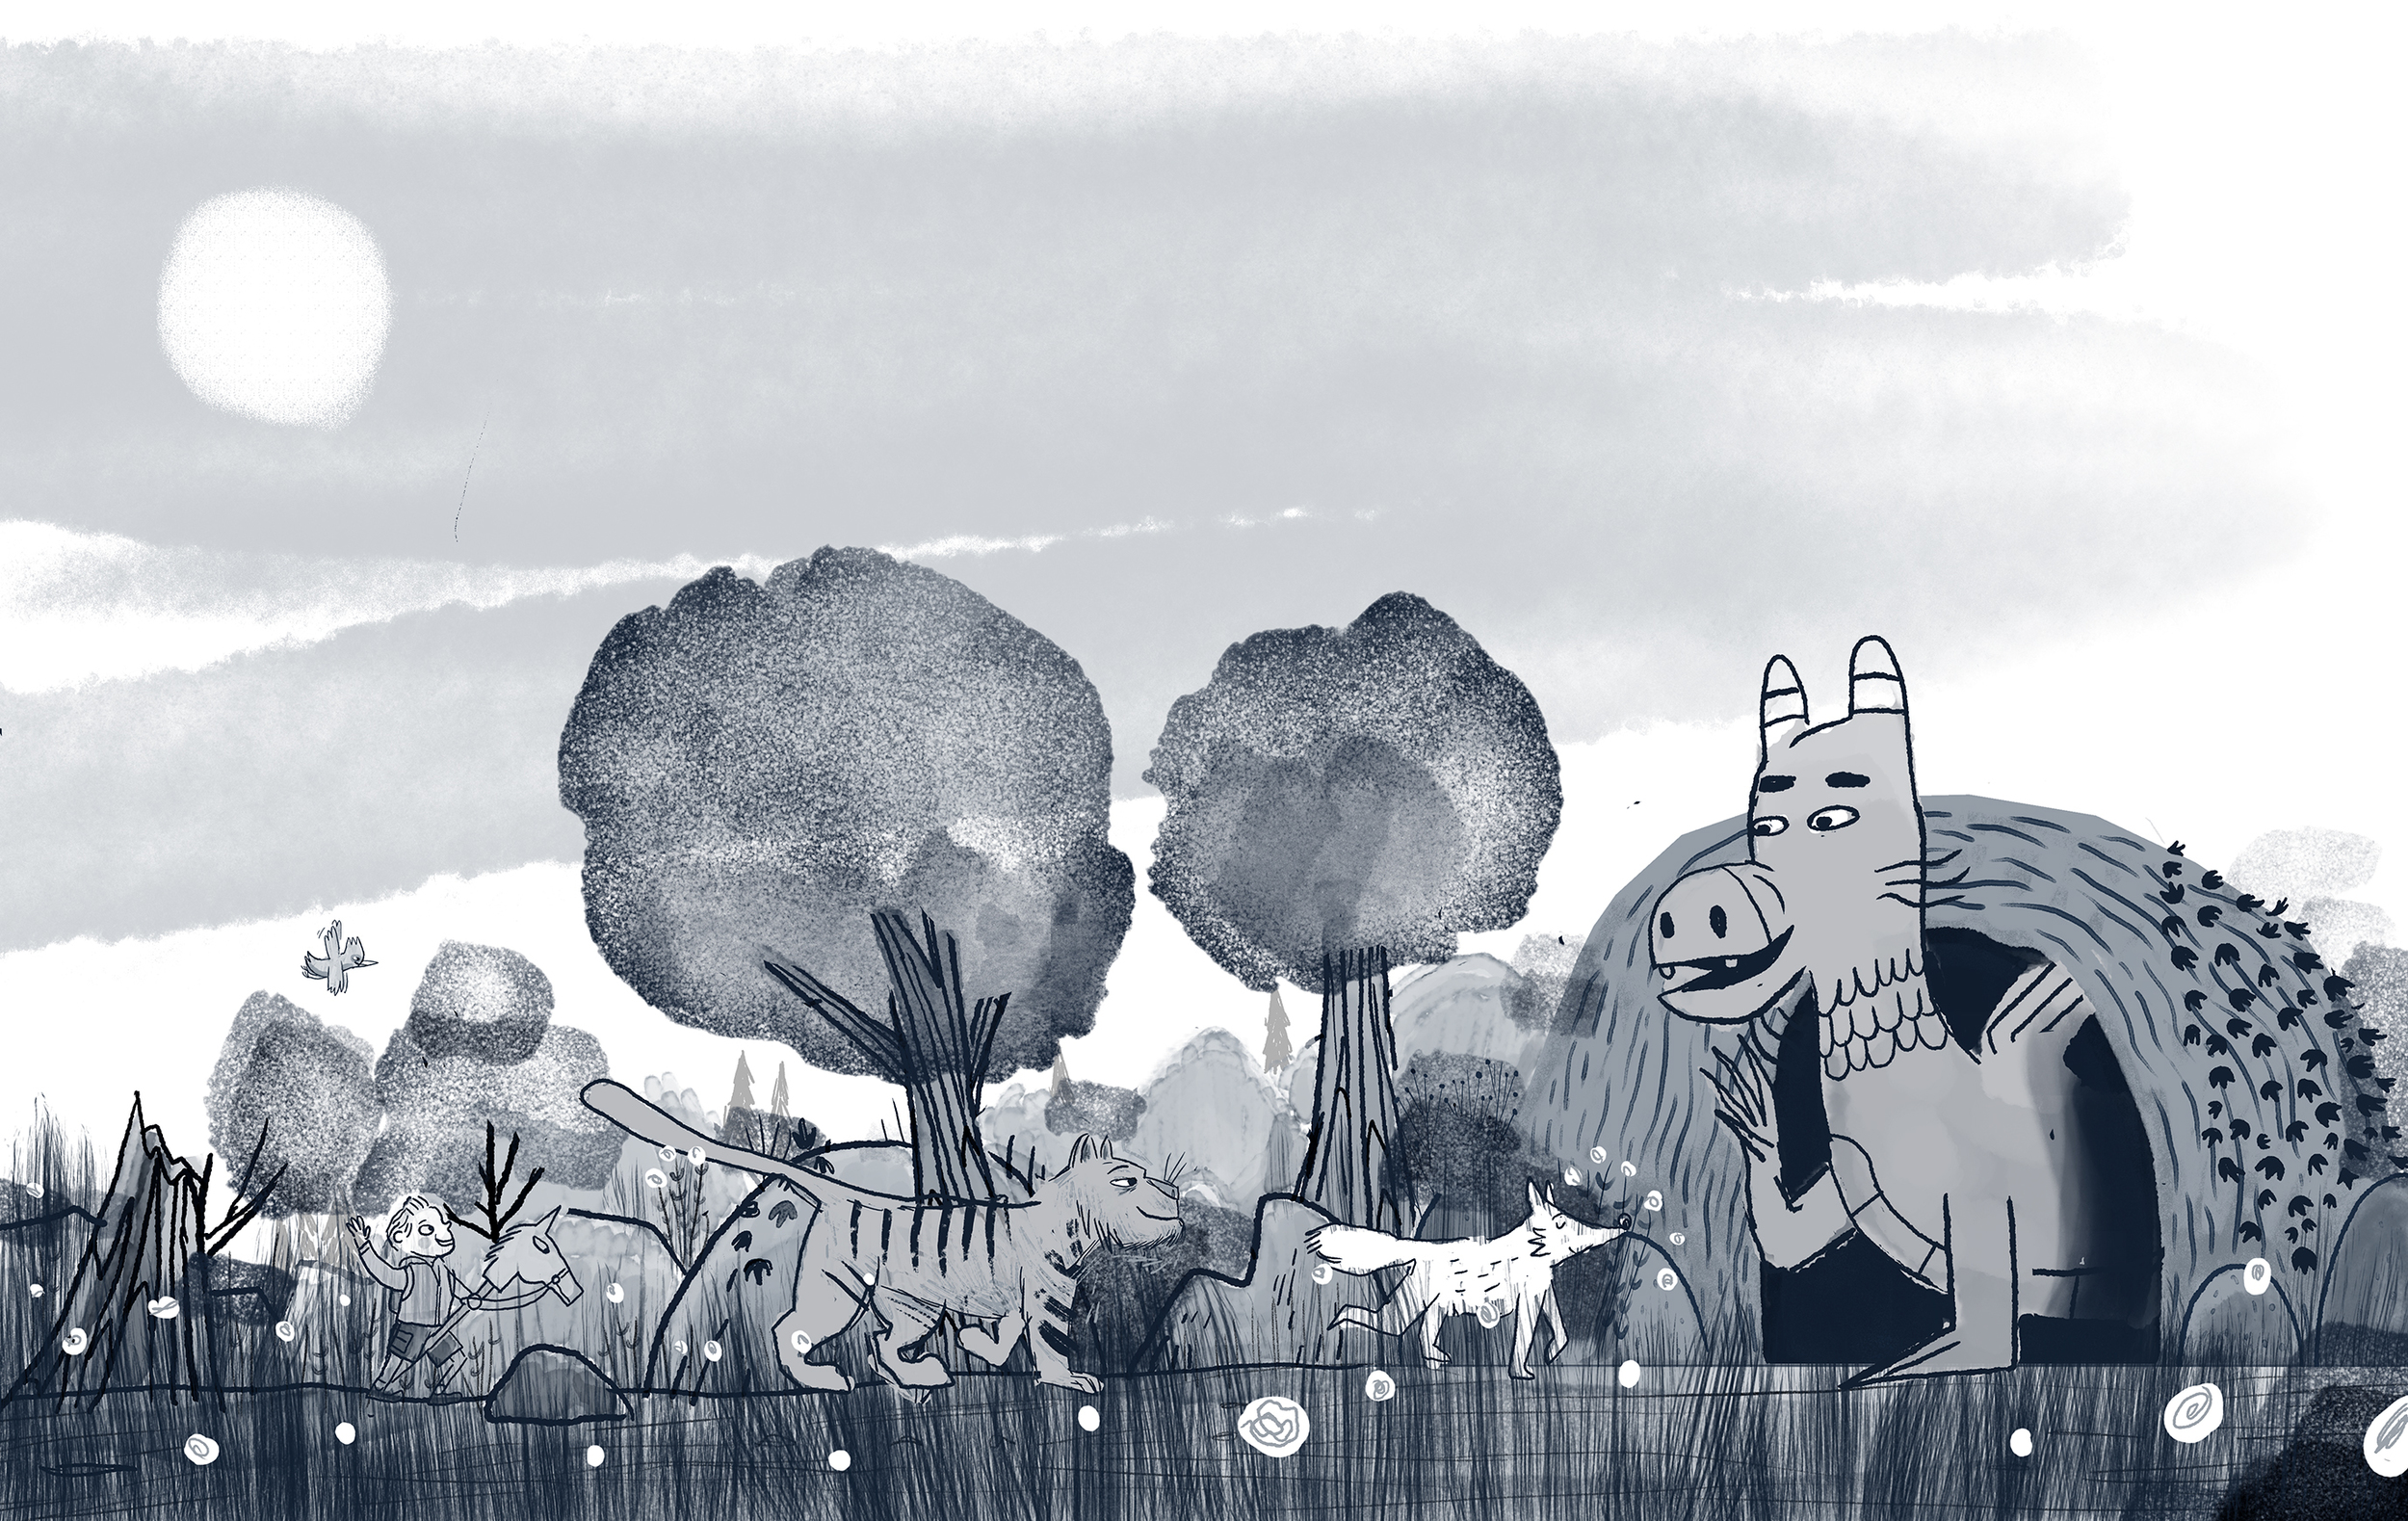 An alternate idea for endpapers that ultimately we rejected.